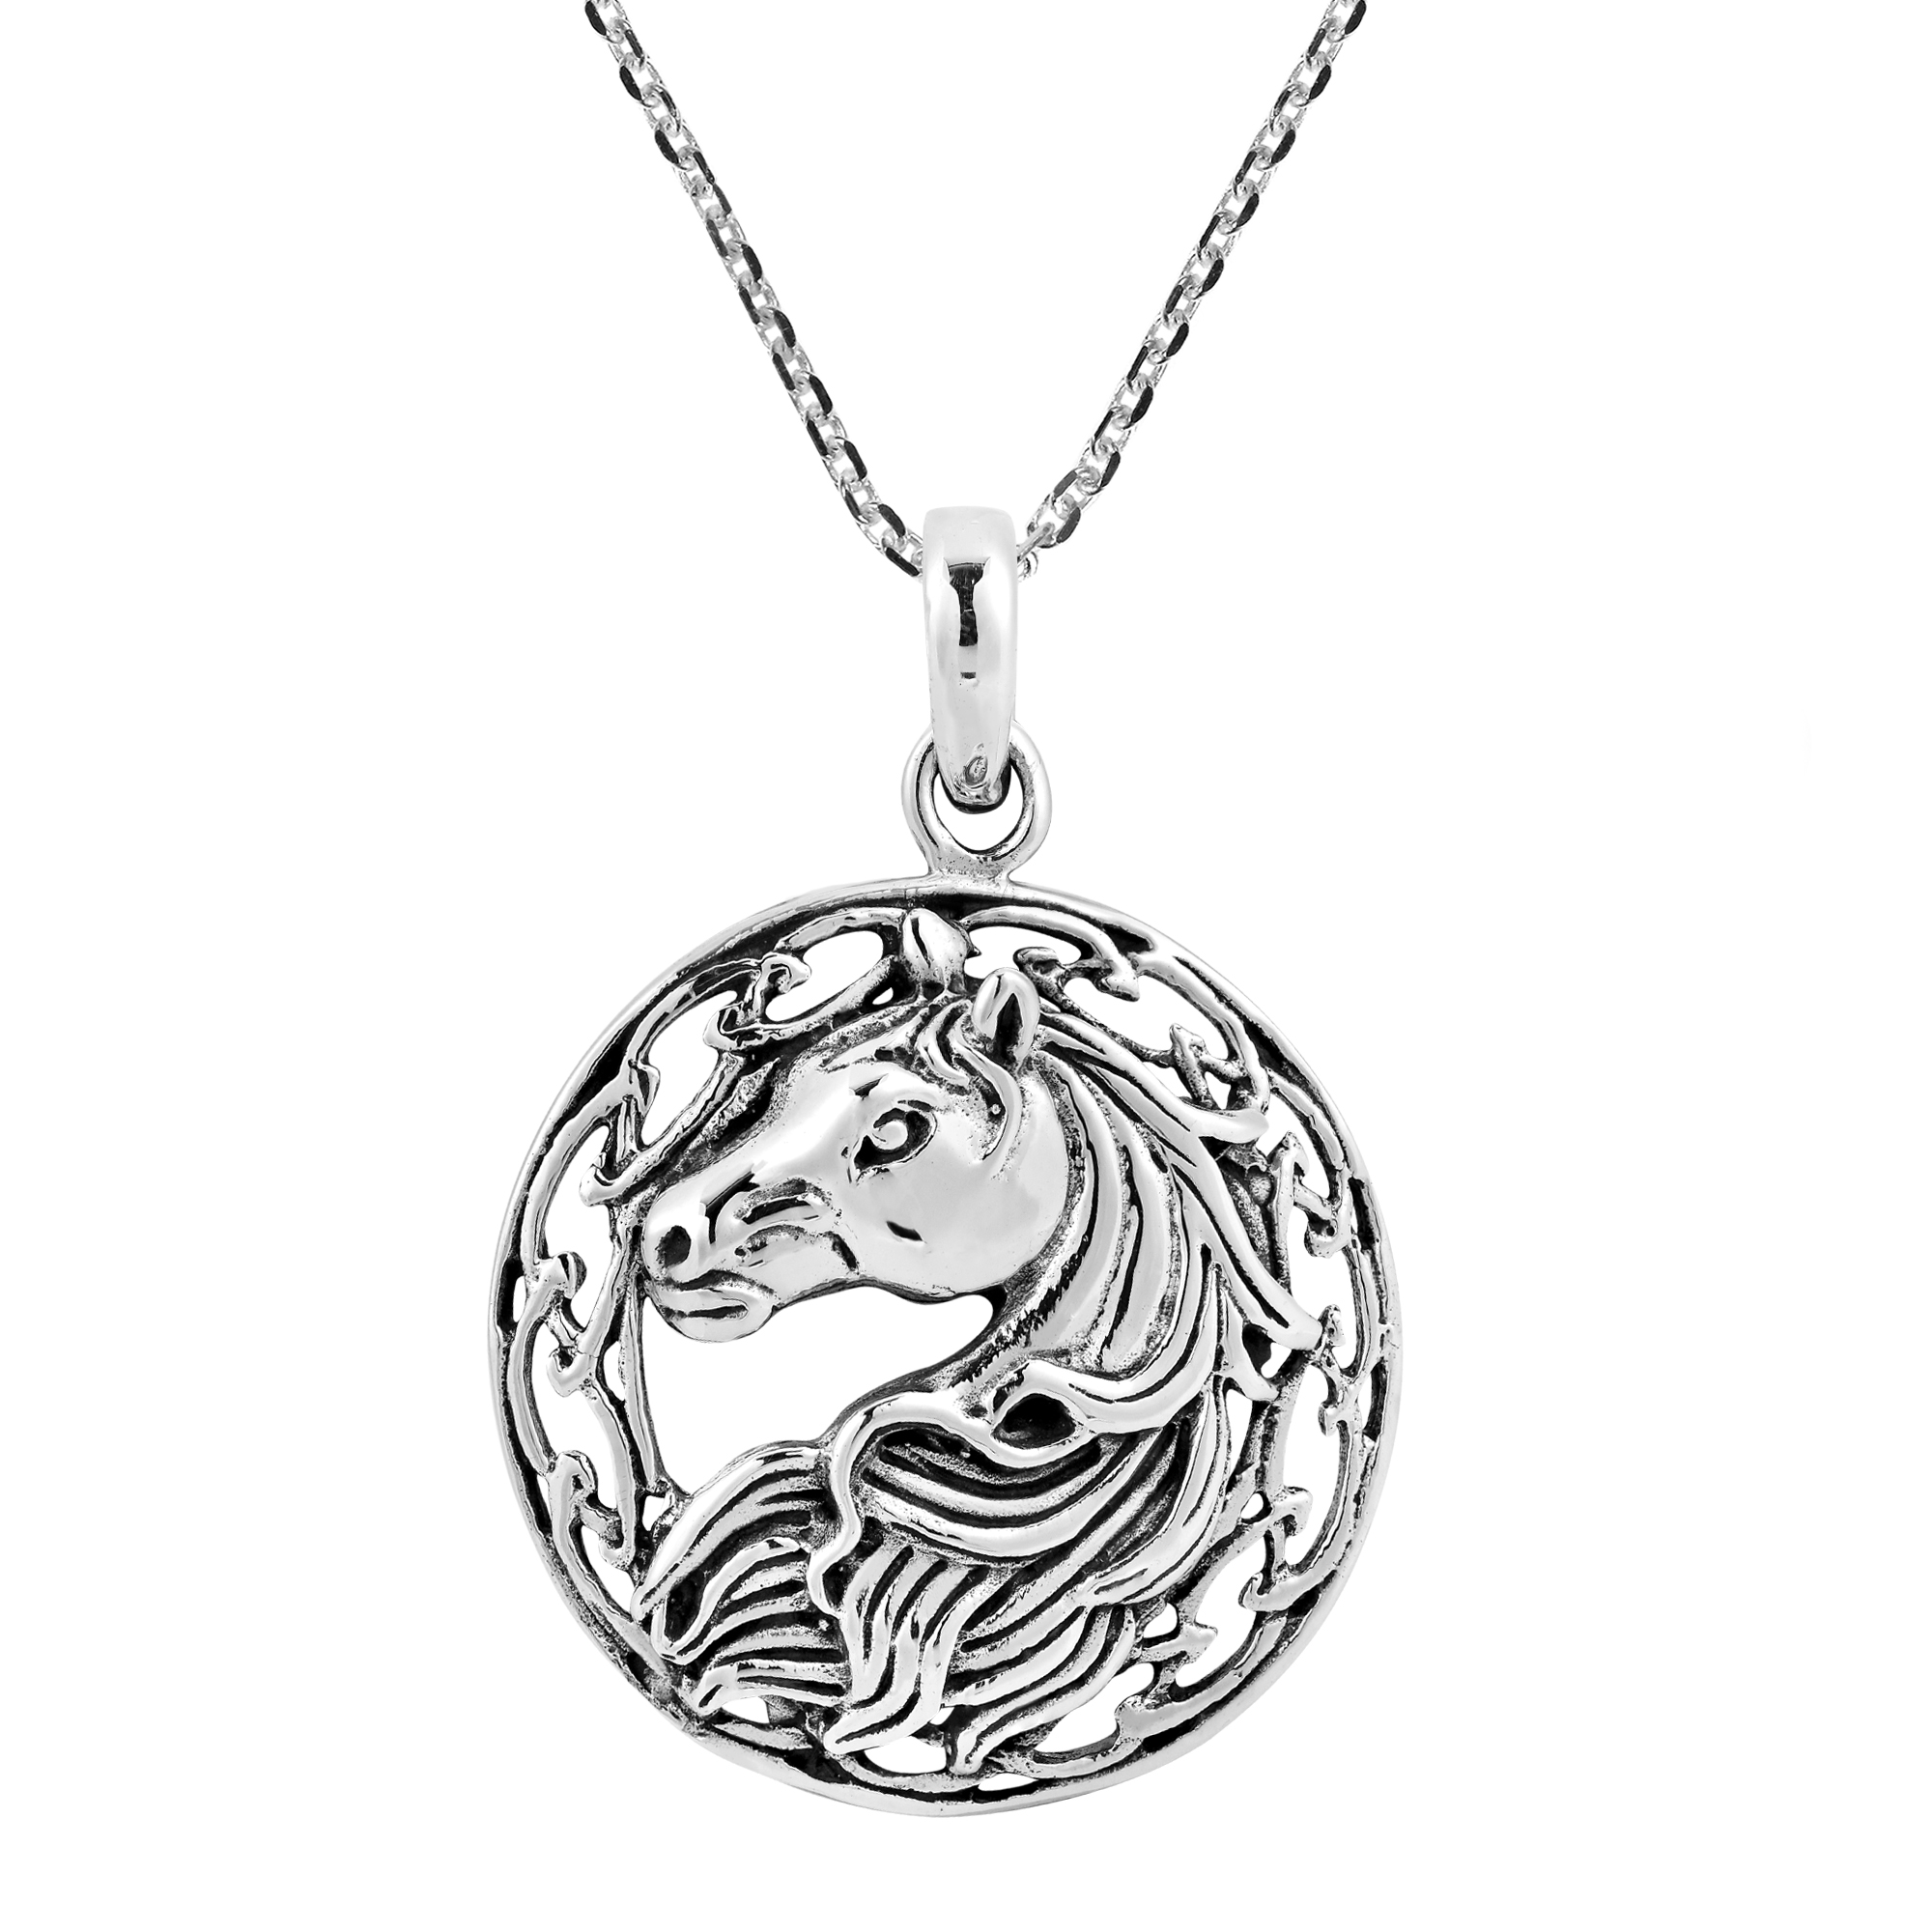 horse equestrian charmed product protection pendant designs spirit loriece necklace by